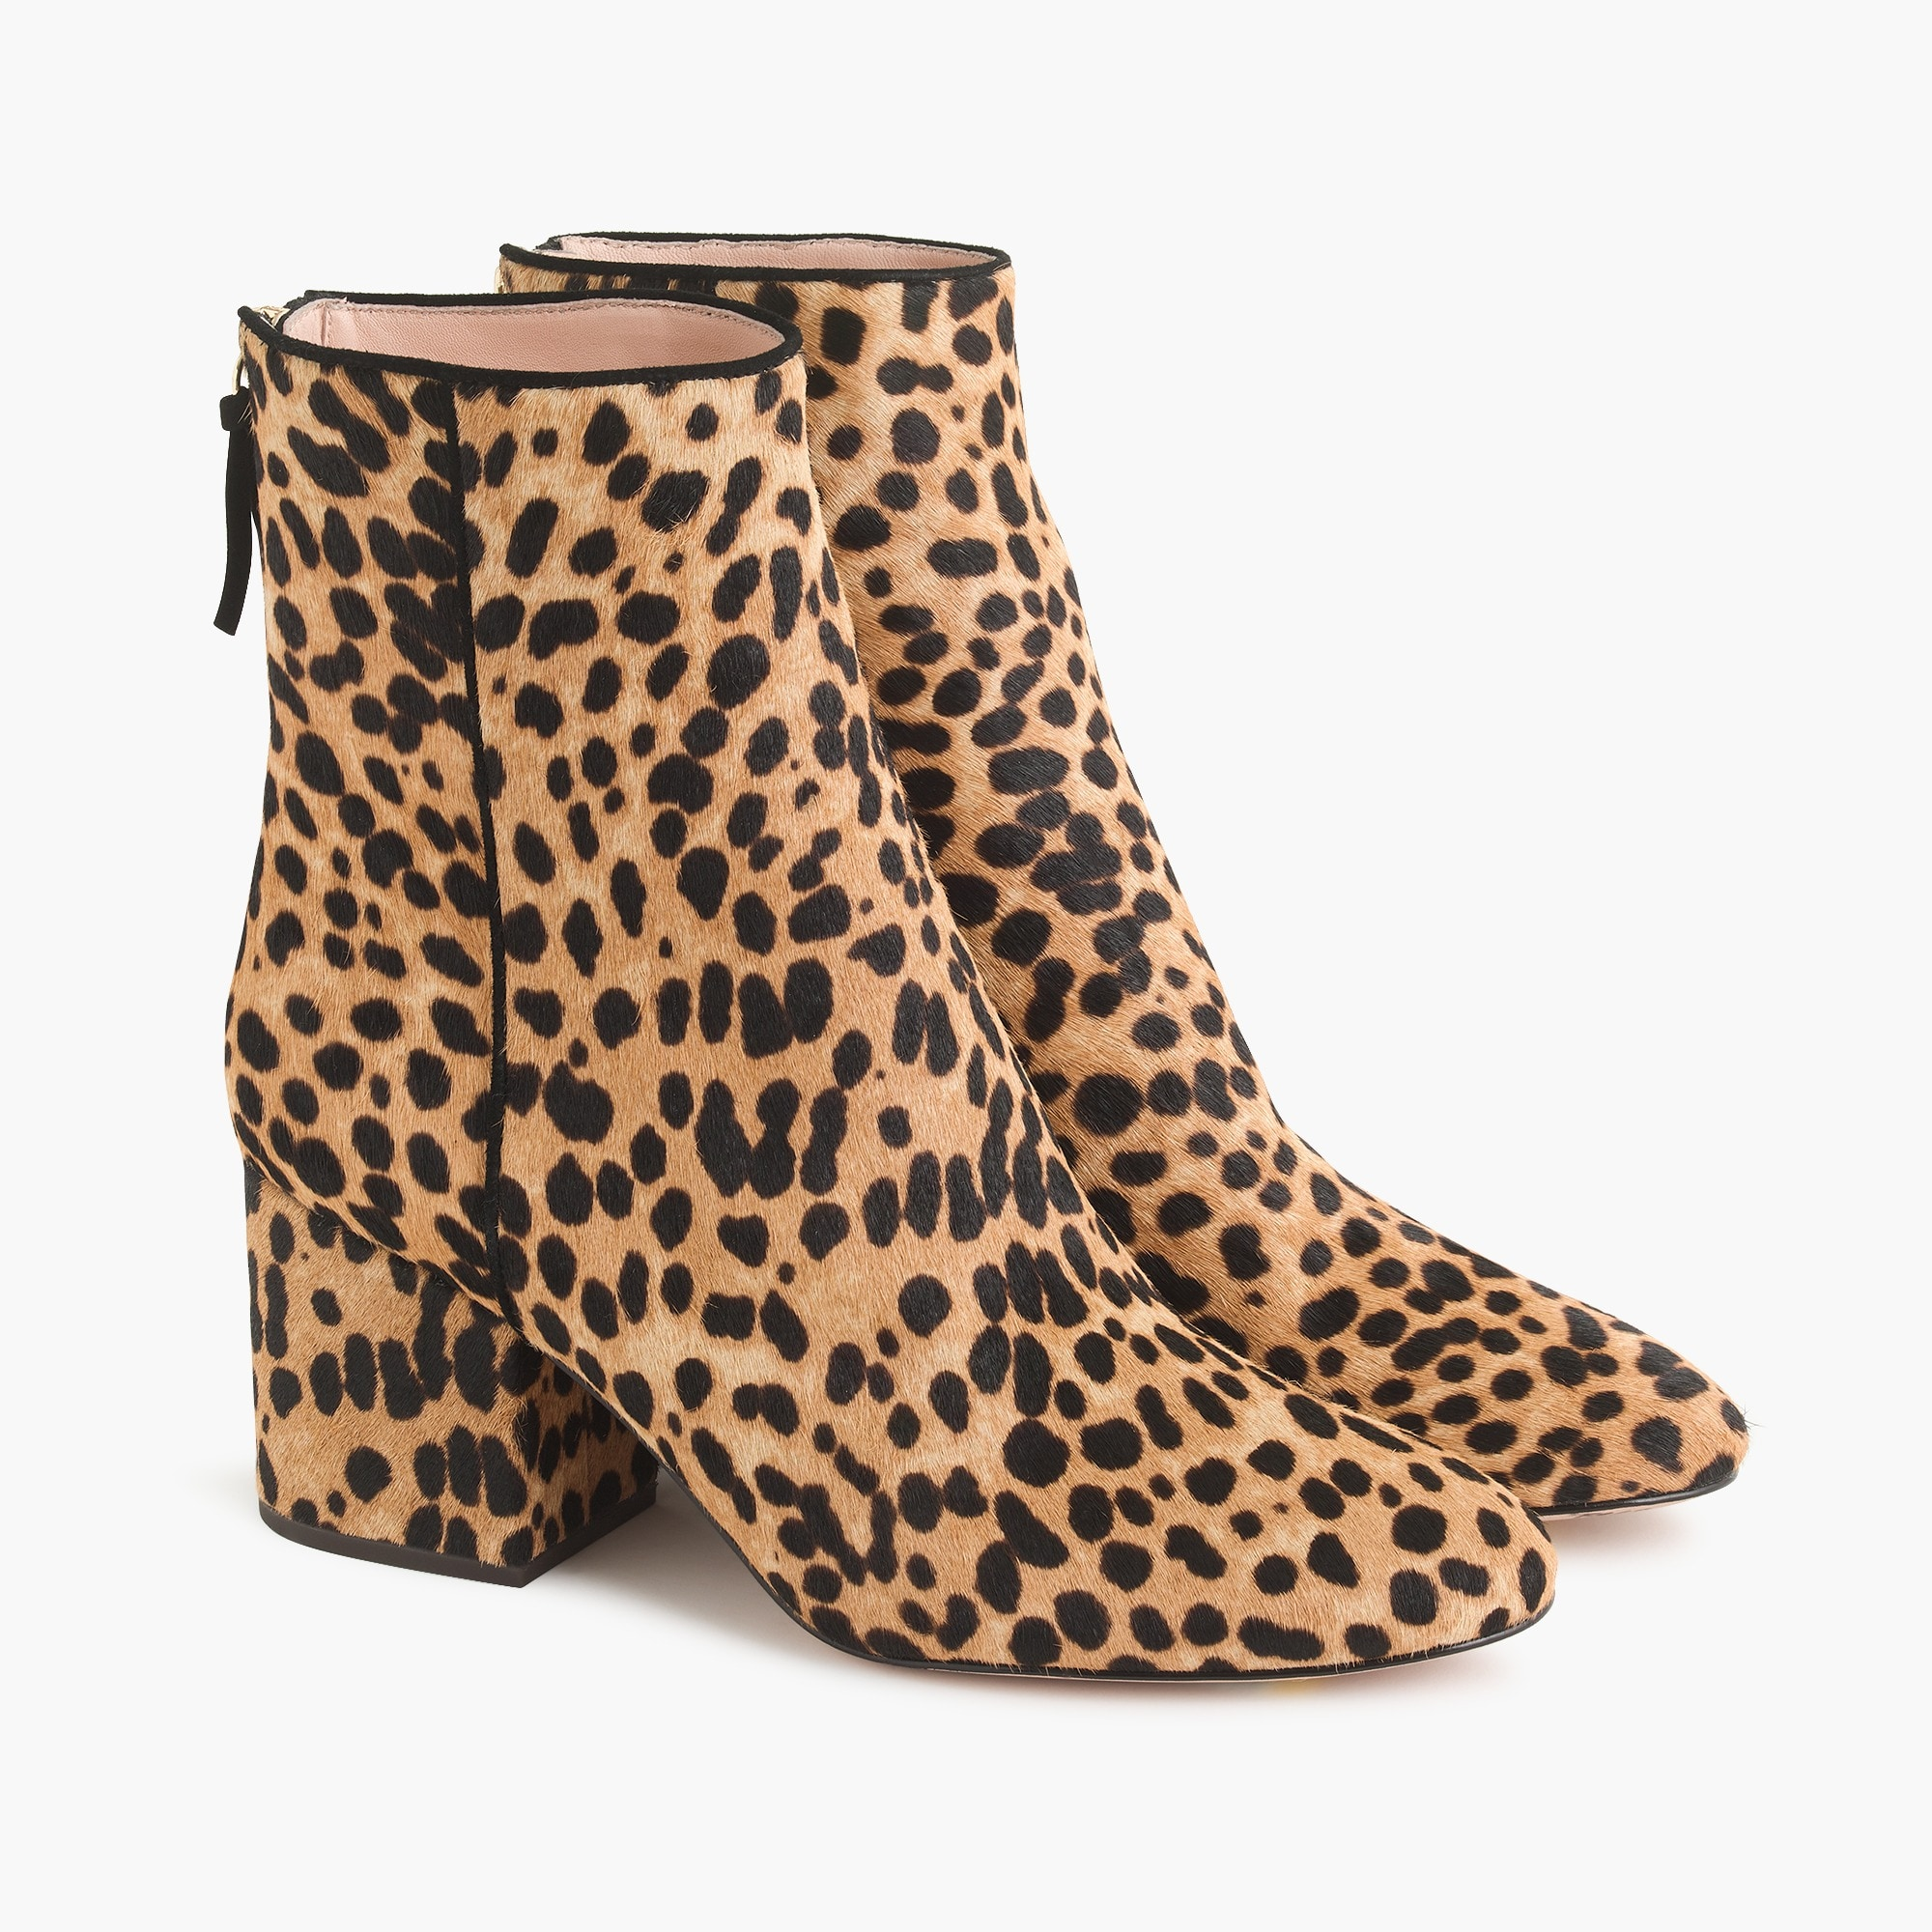 Image 5 for Sadie ankle boots in leopard calf hair